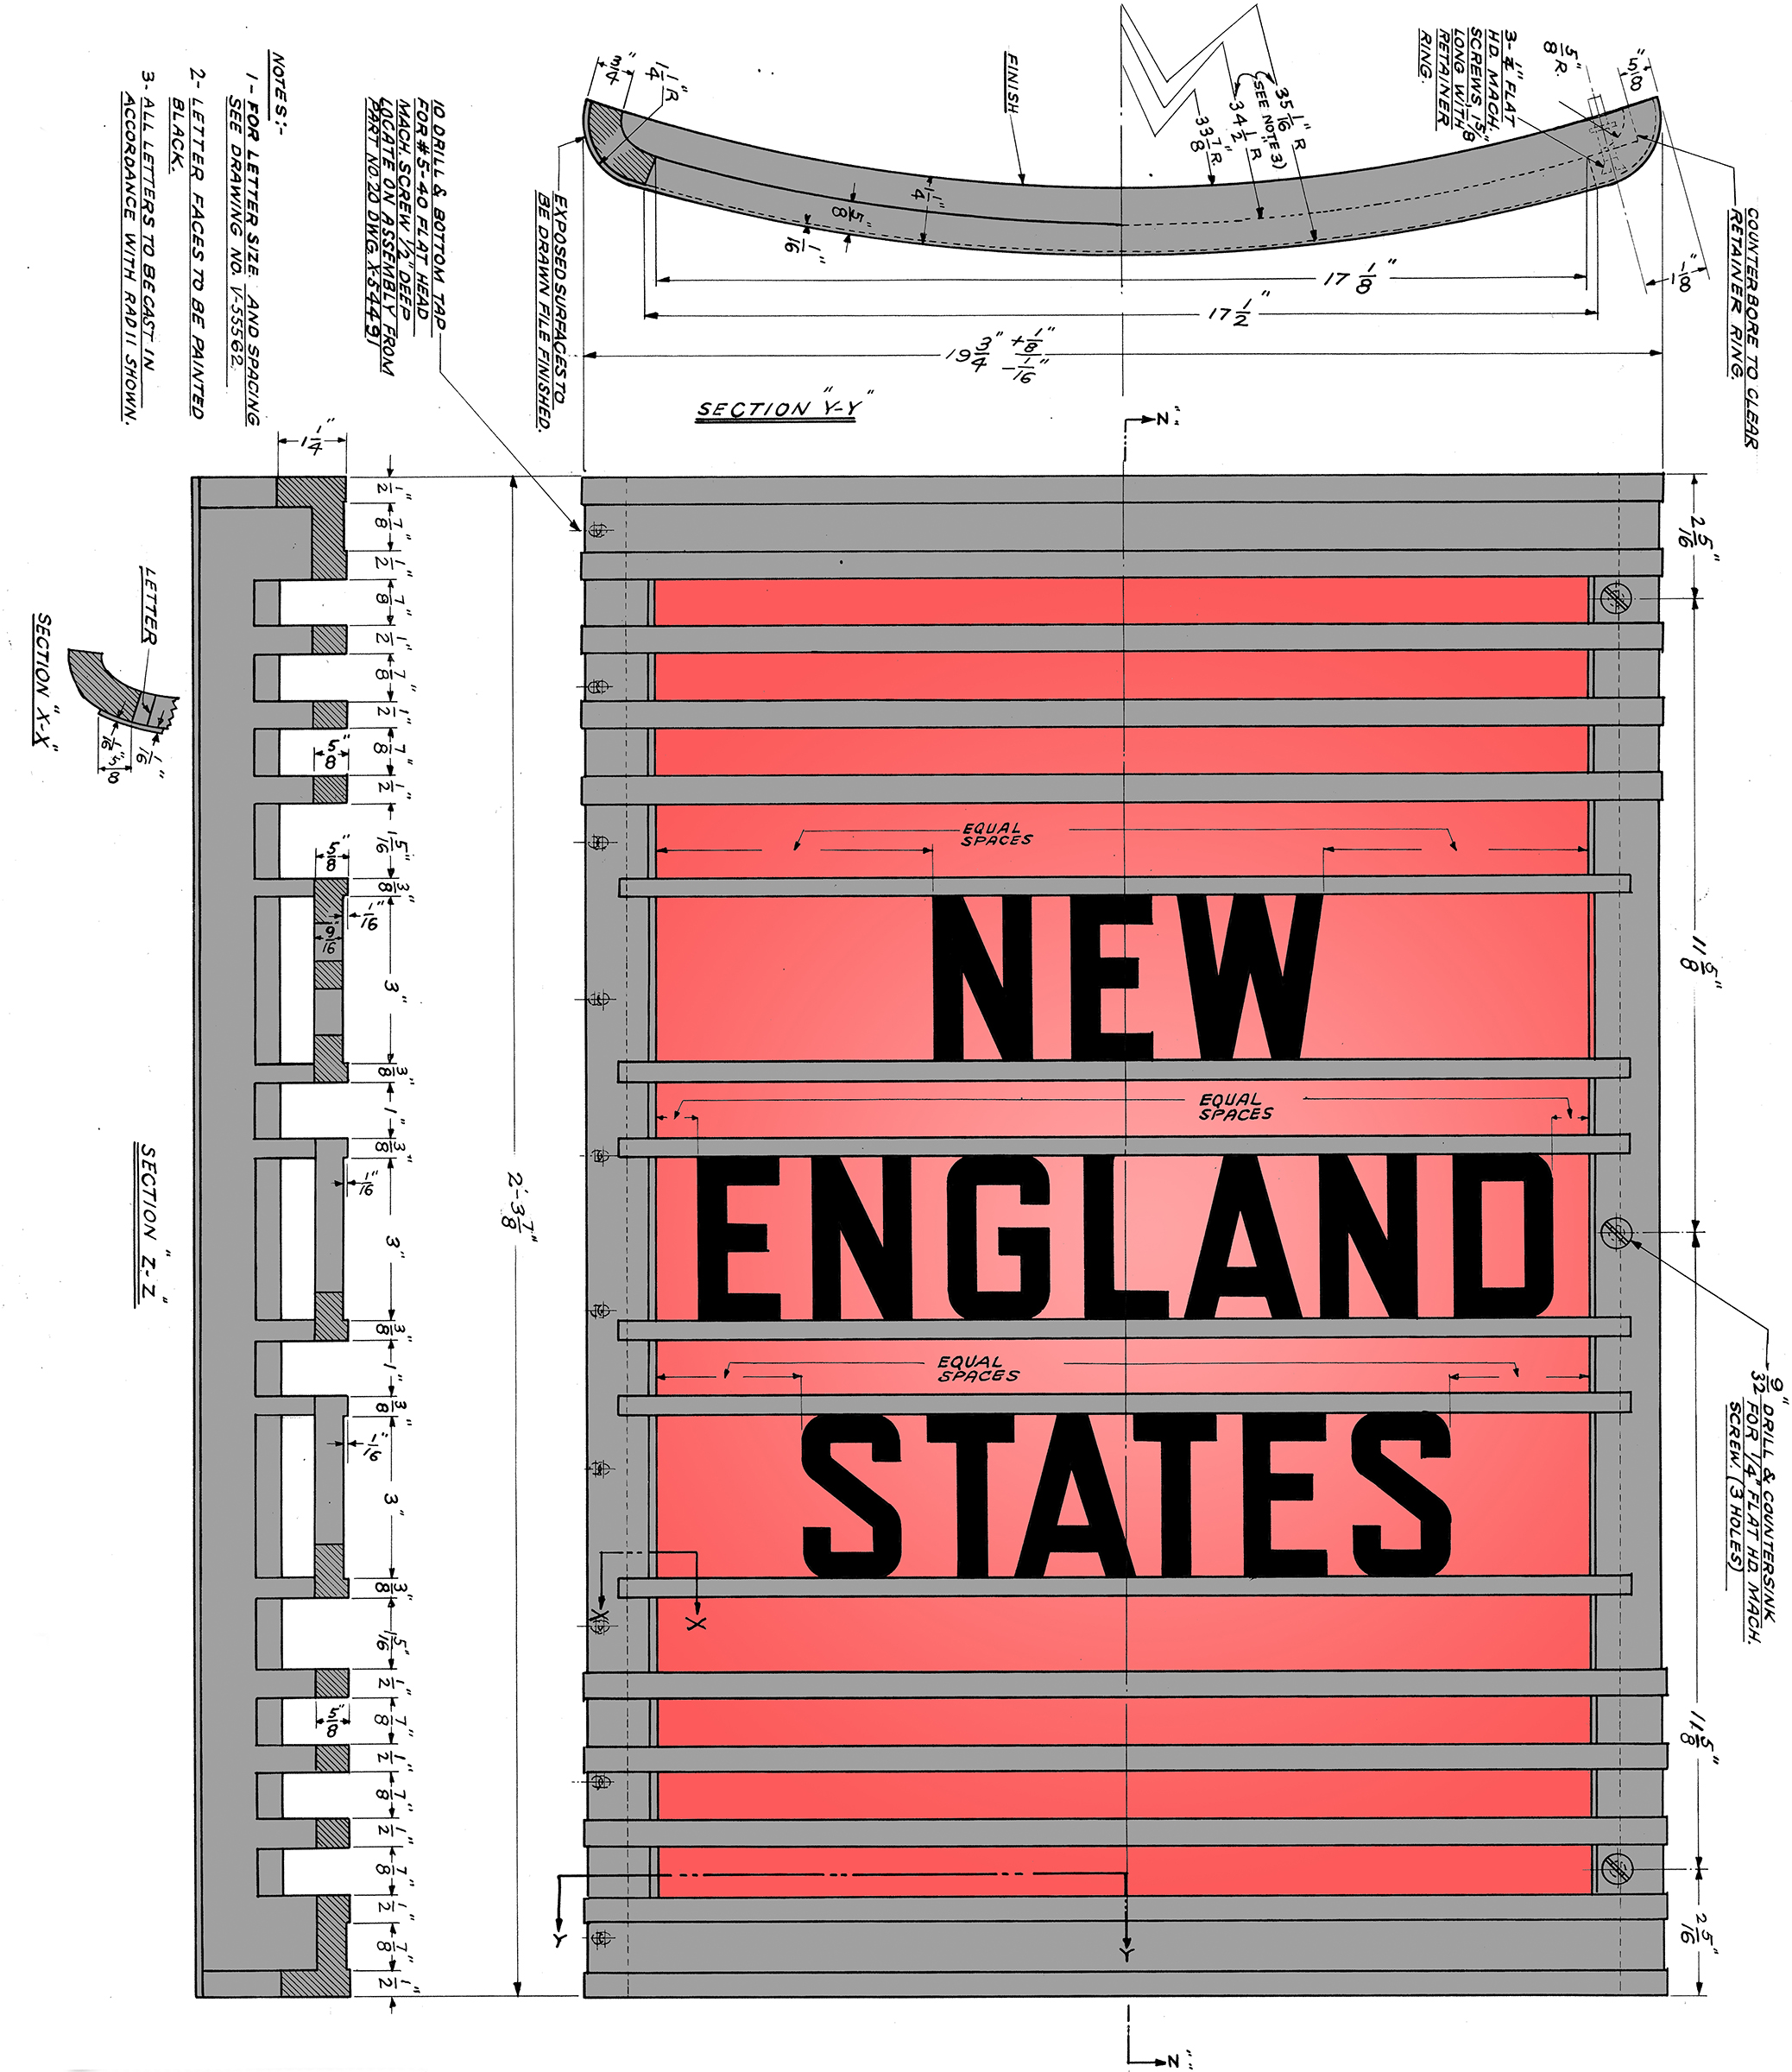 Original 1949 spec drawings (colorized) for the New York Central's  New England States  tailsign. These drawings were used to make an exact stainless steel replica that adorns the car today.